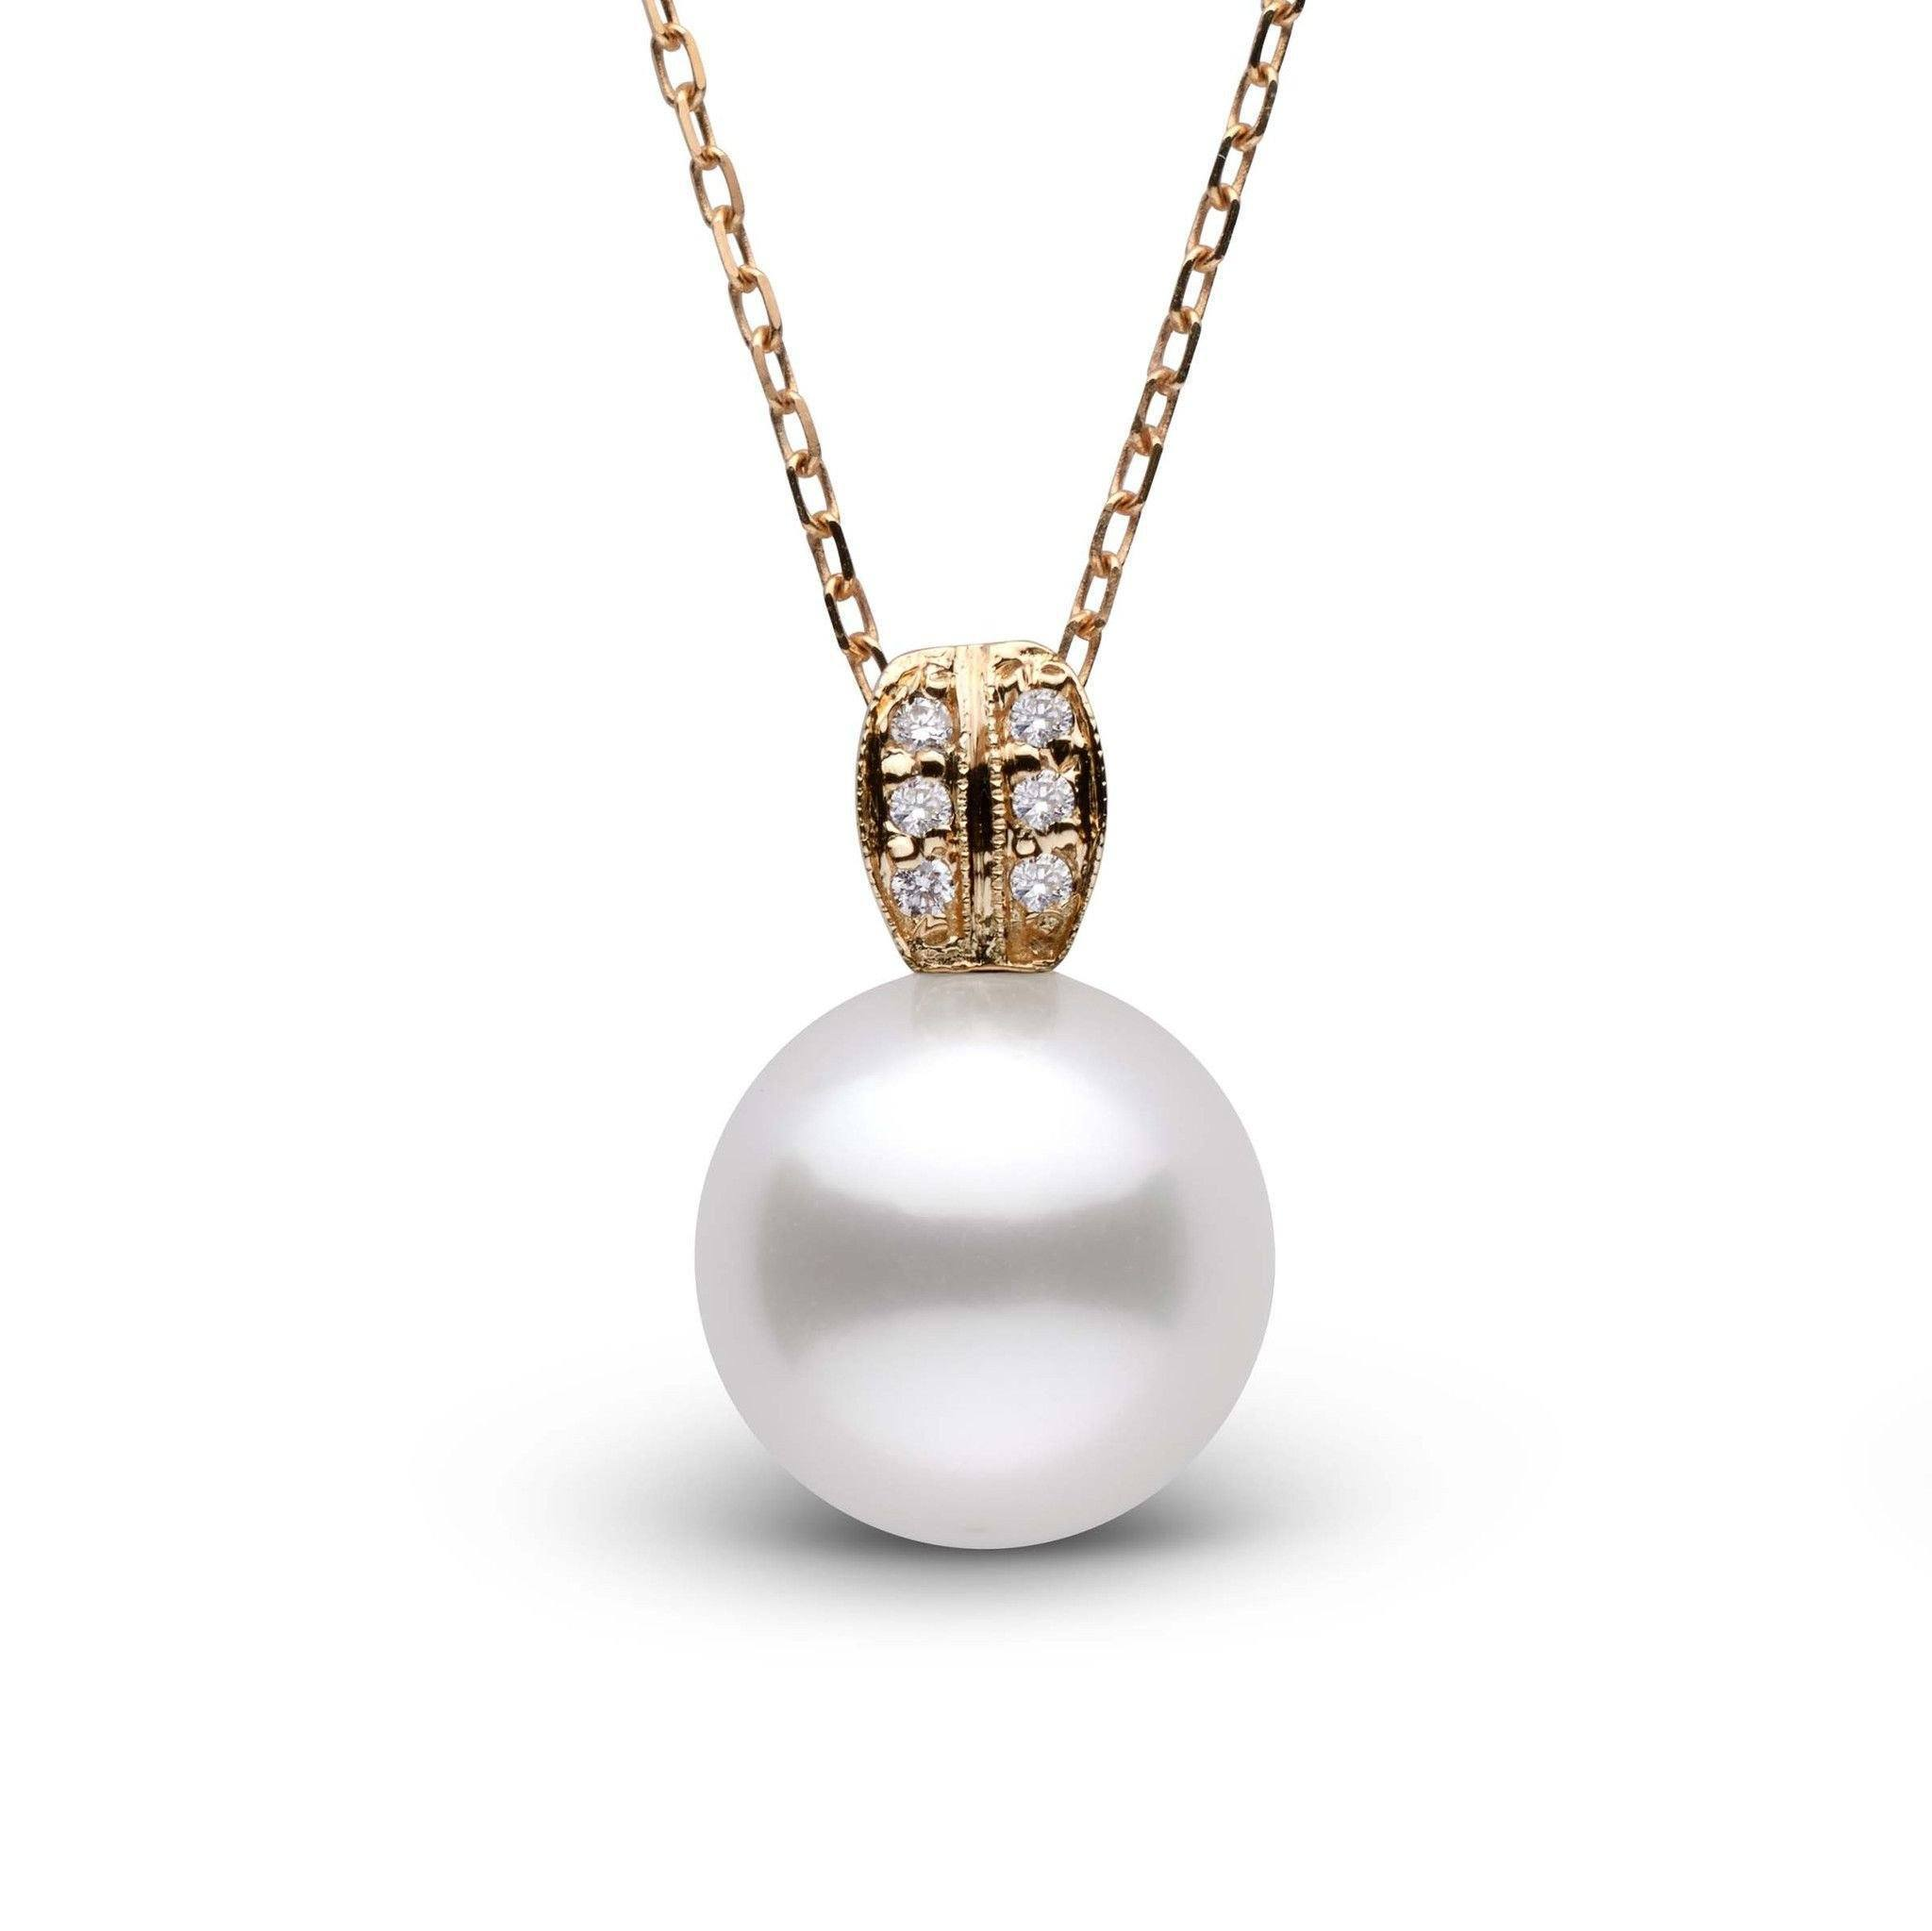 Enchant Collection White 10.0-11.0 mm South Sea Pearl and Diamond Pendant